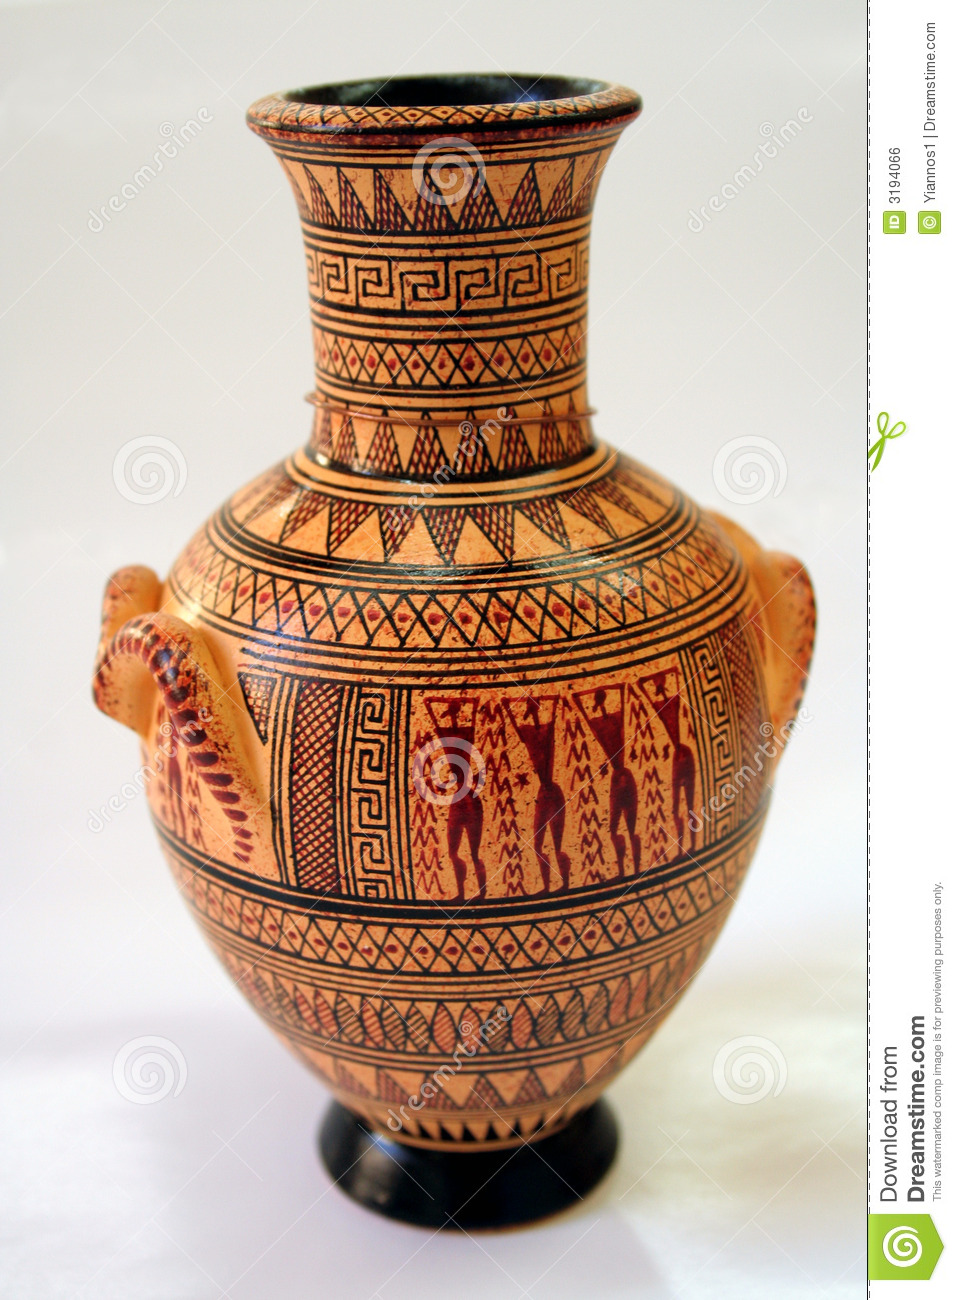 2 fresh ancient greek vases home idea ancient greek vase royalty free stock image image reviewsmspy